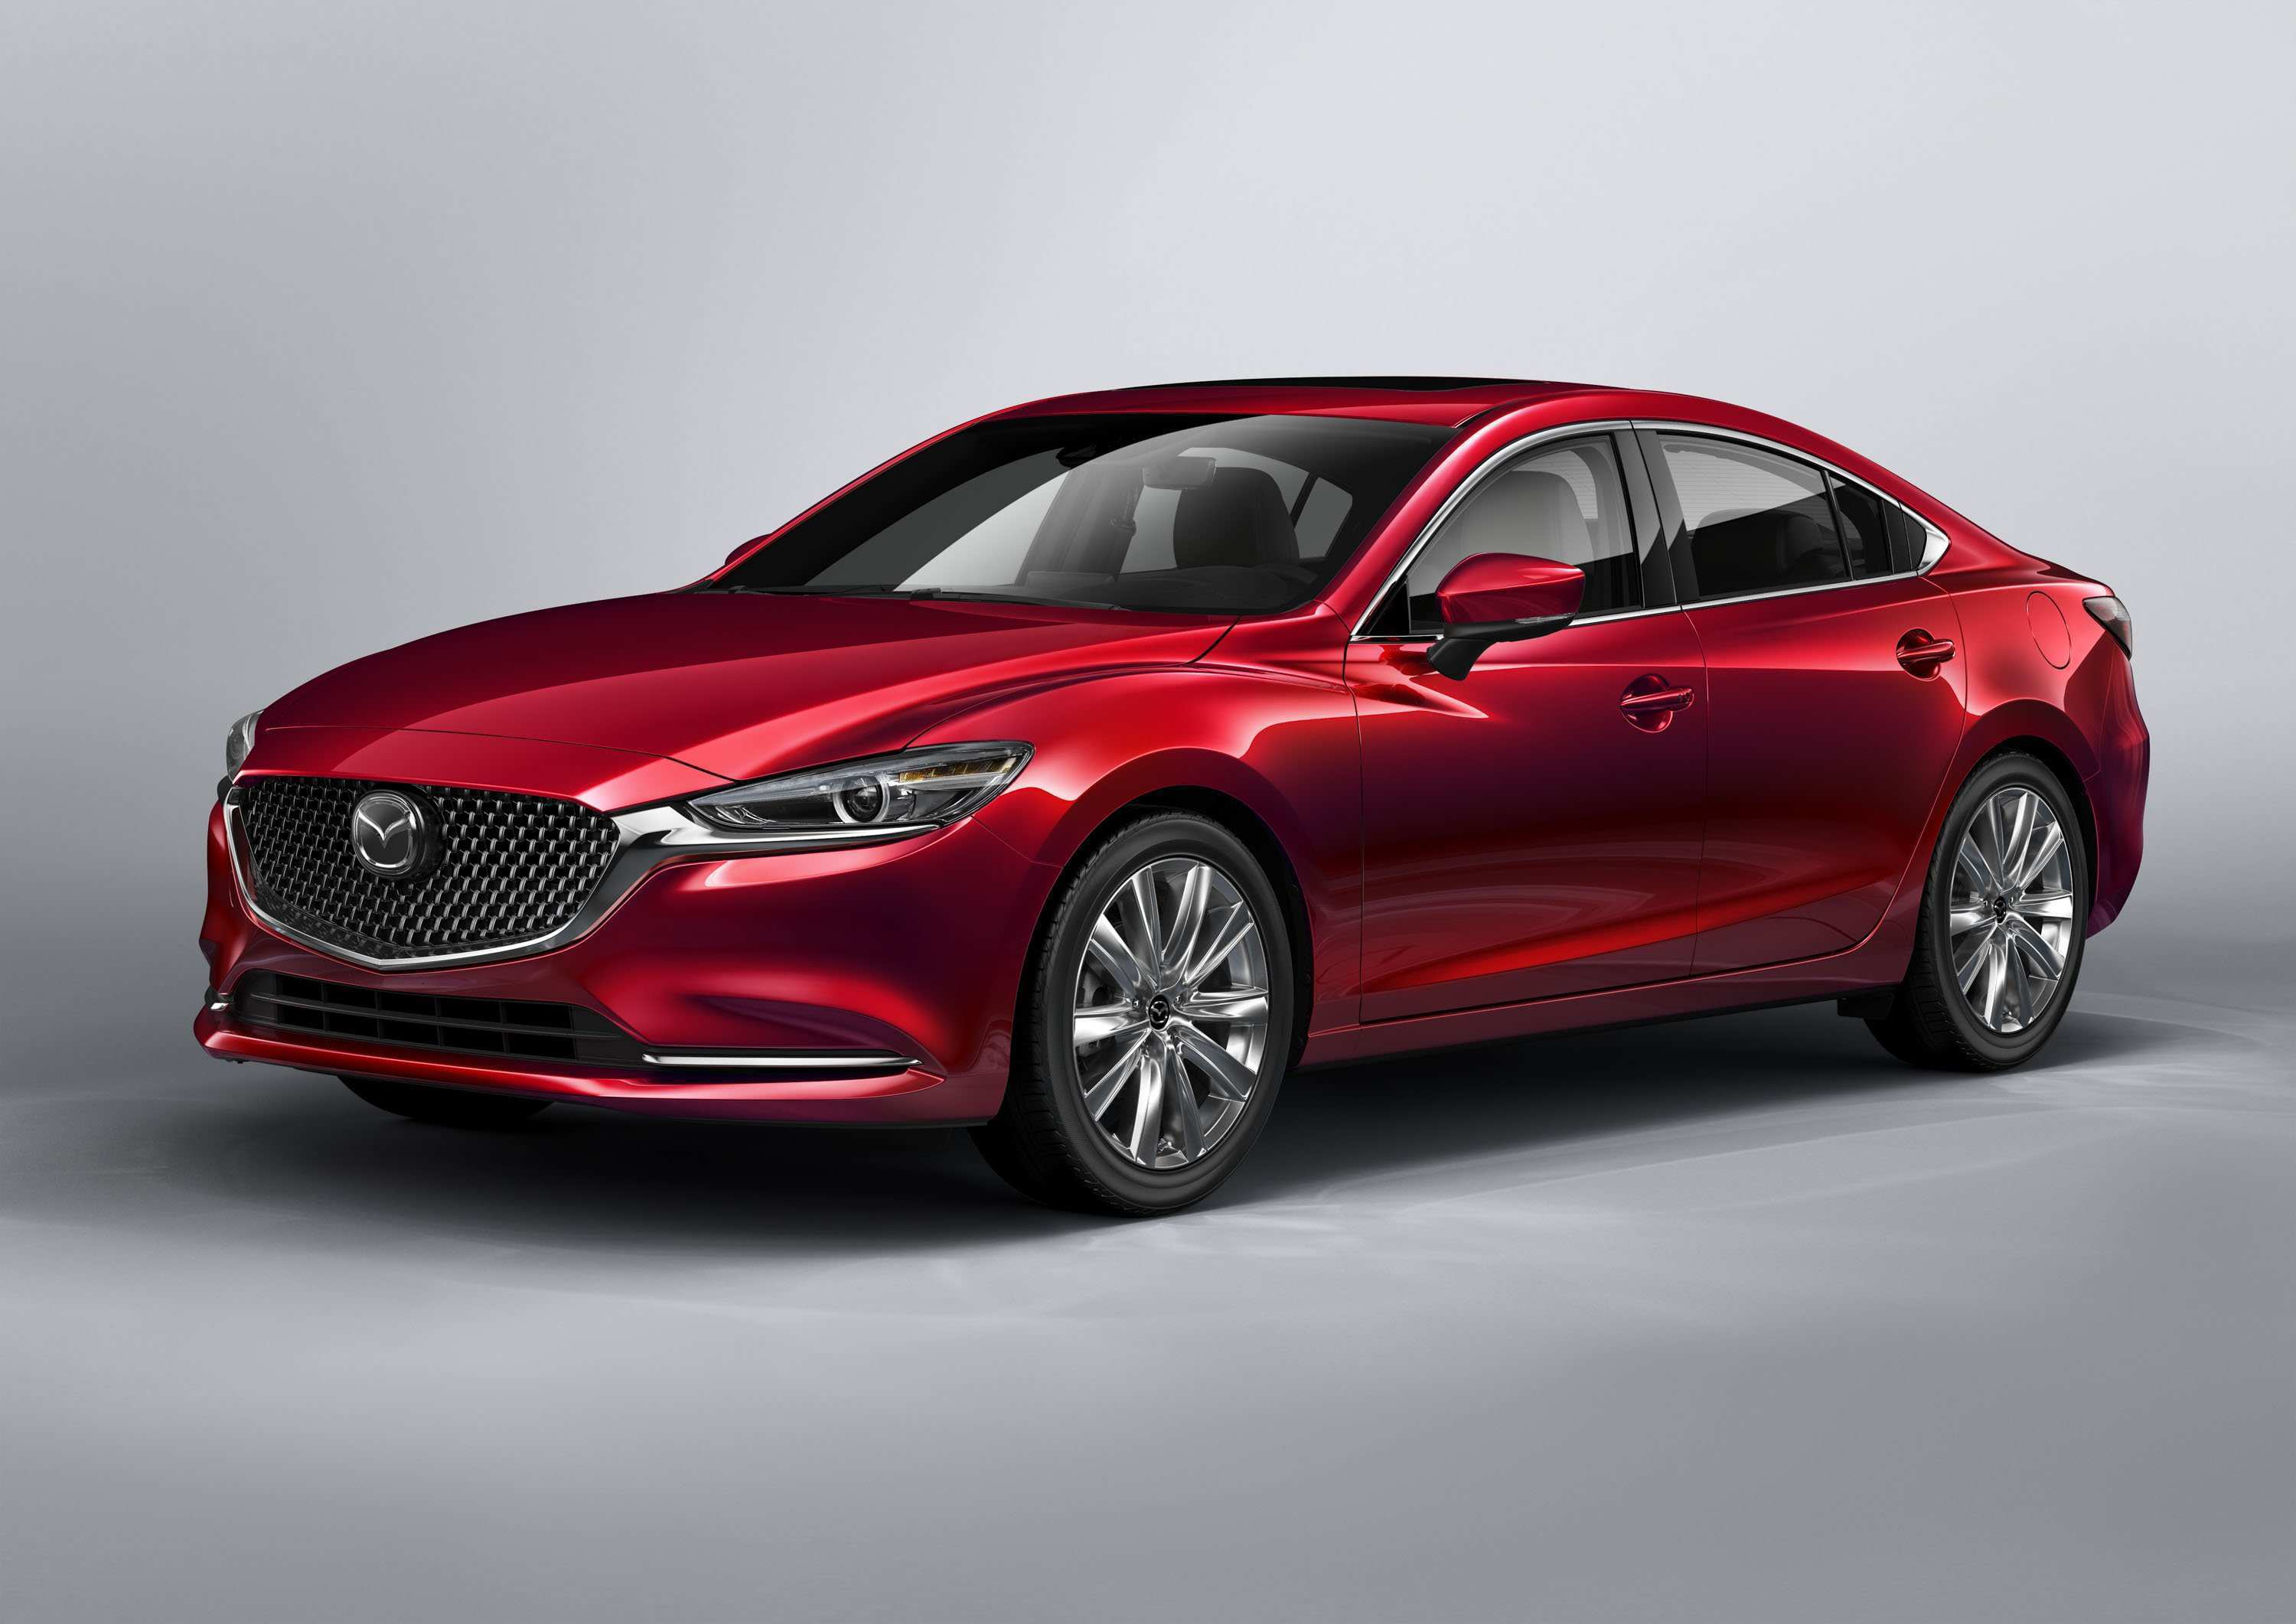 82 Gallery of New 2019 Mazda 6 Spy Shots Redesign Price And Review First Drive with New 2019 Mazda 6 Spy Shots Redesign Price And Review